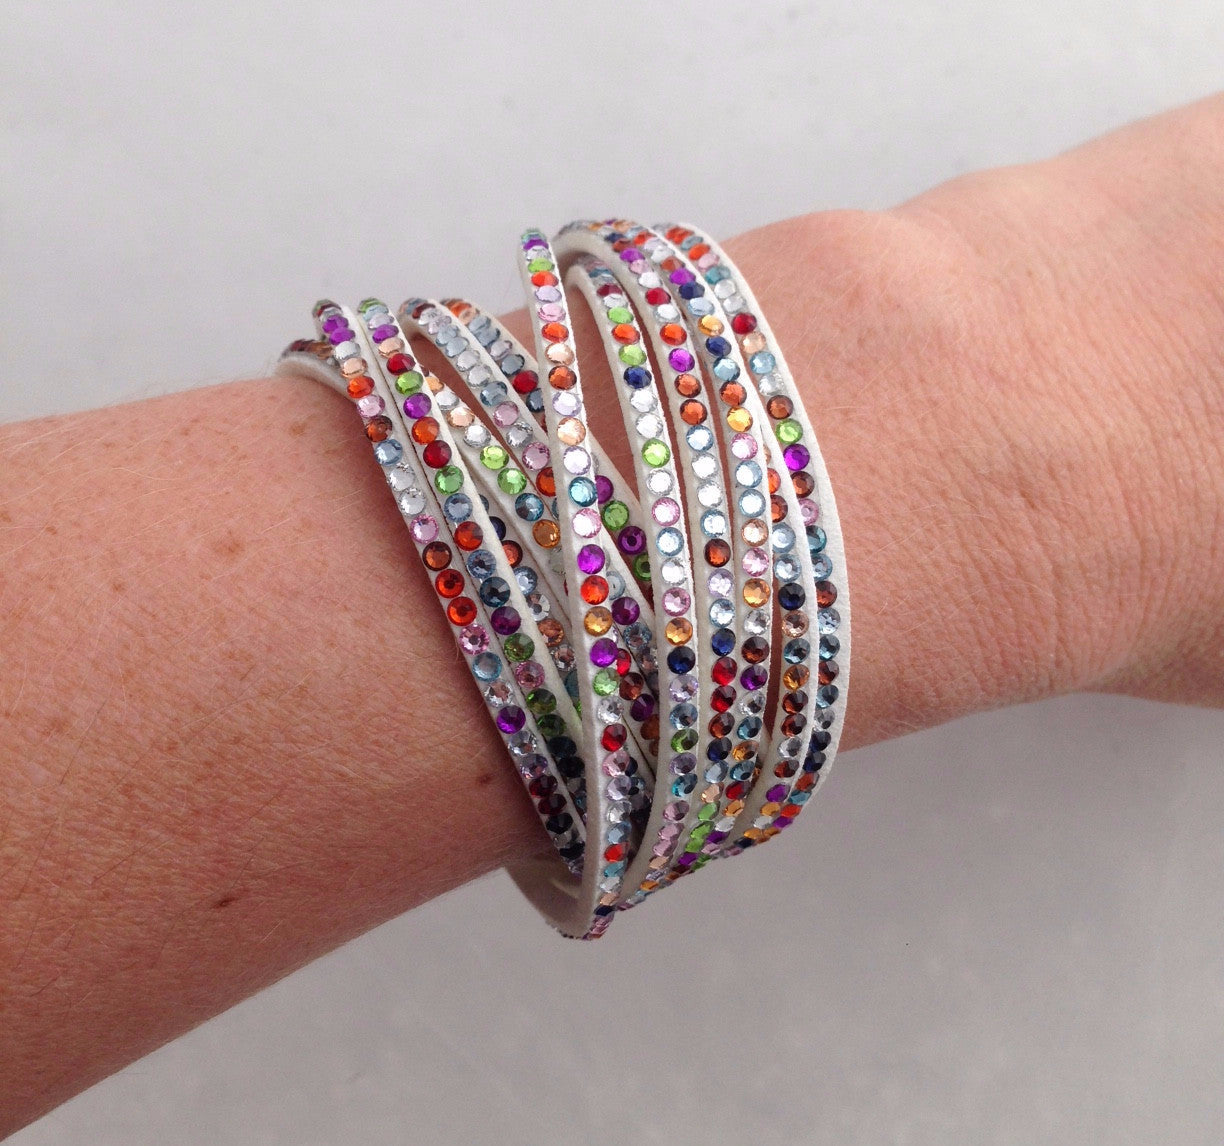 Wrap Bracelet - Multicolored Rhinestone Felt